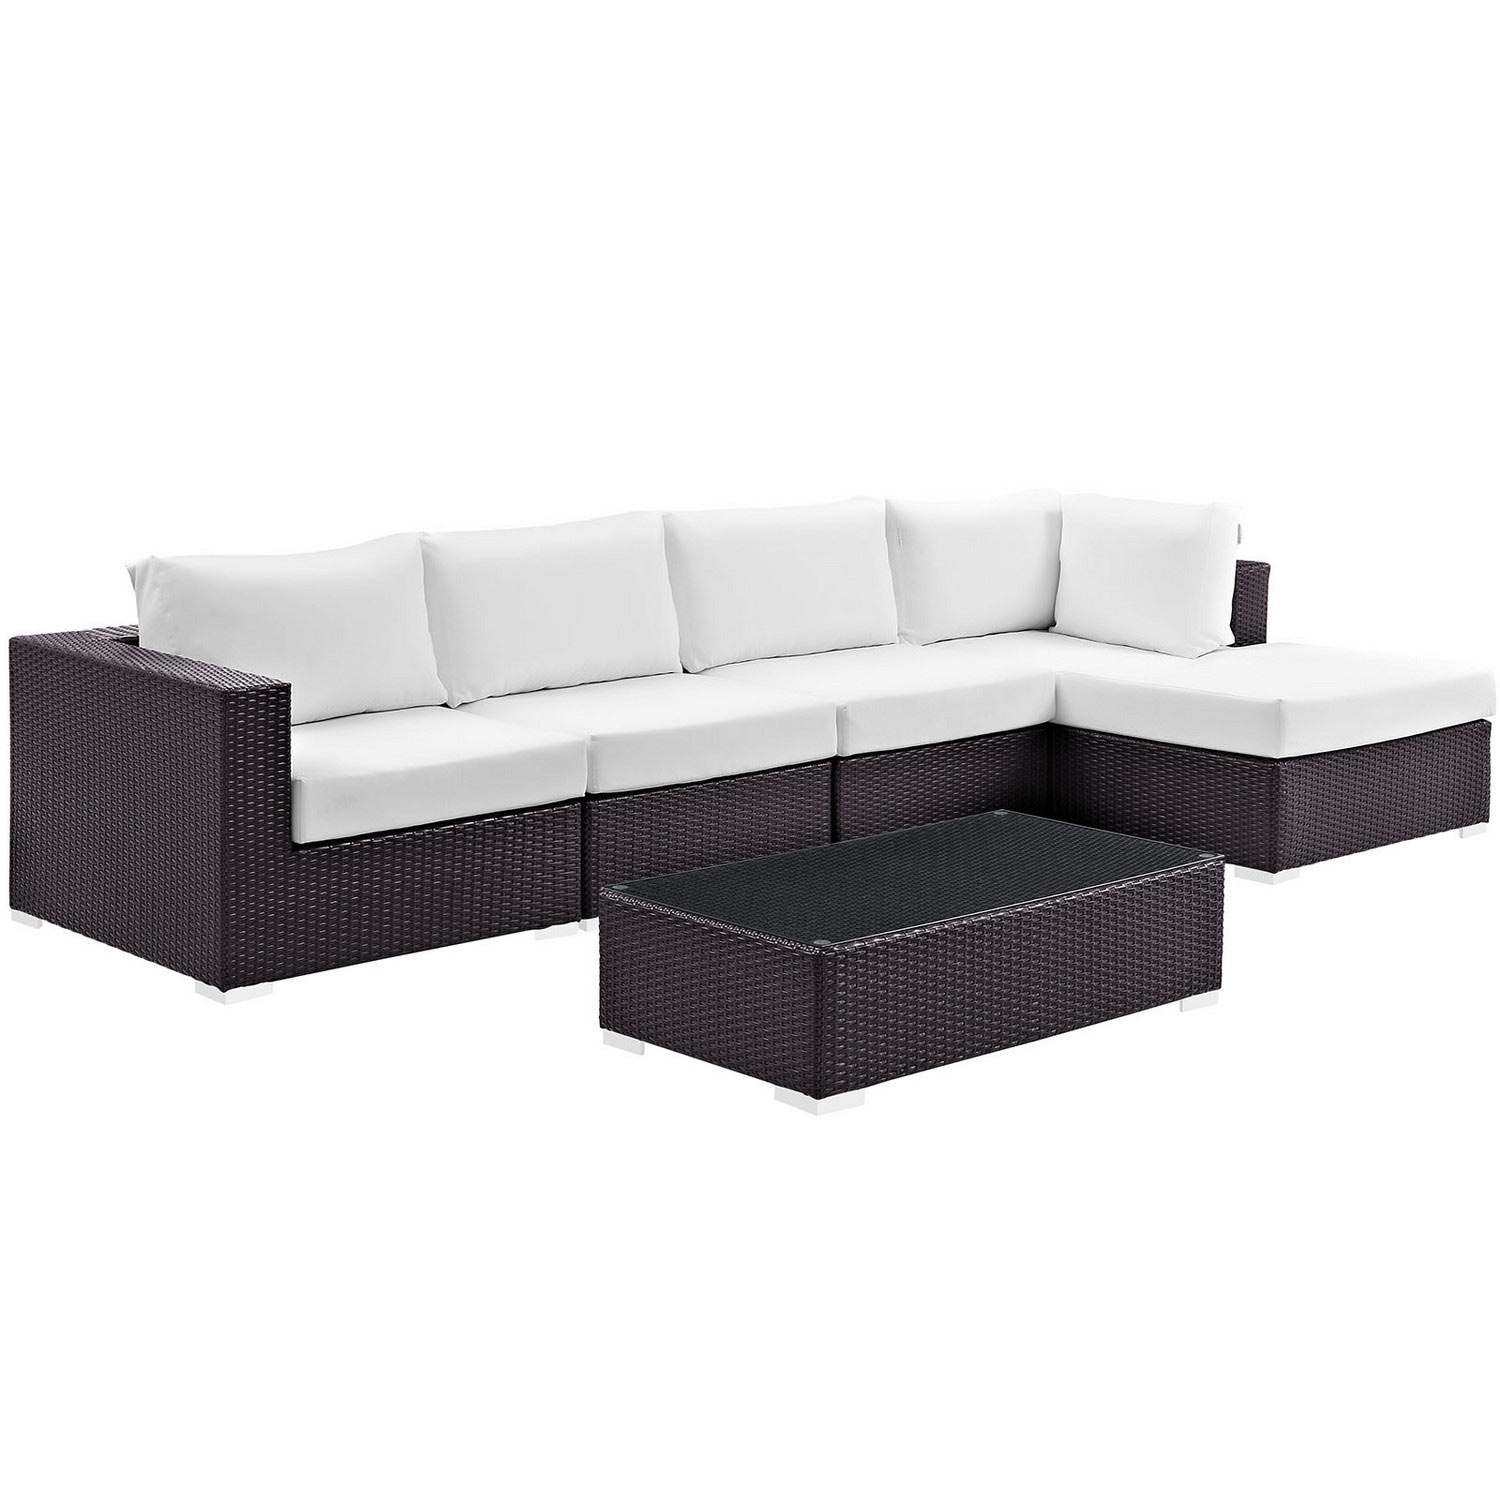 Modway Convene 5 Piece Outdoor Patio Sectional Set - Espresso White